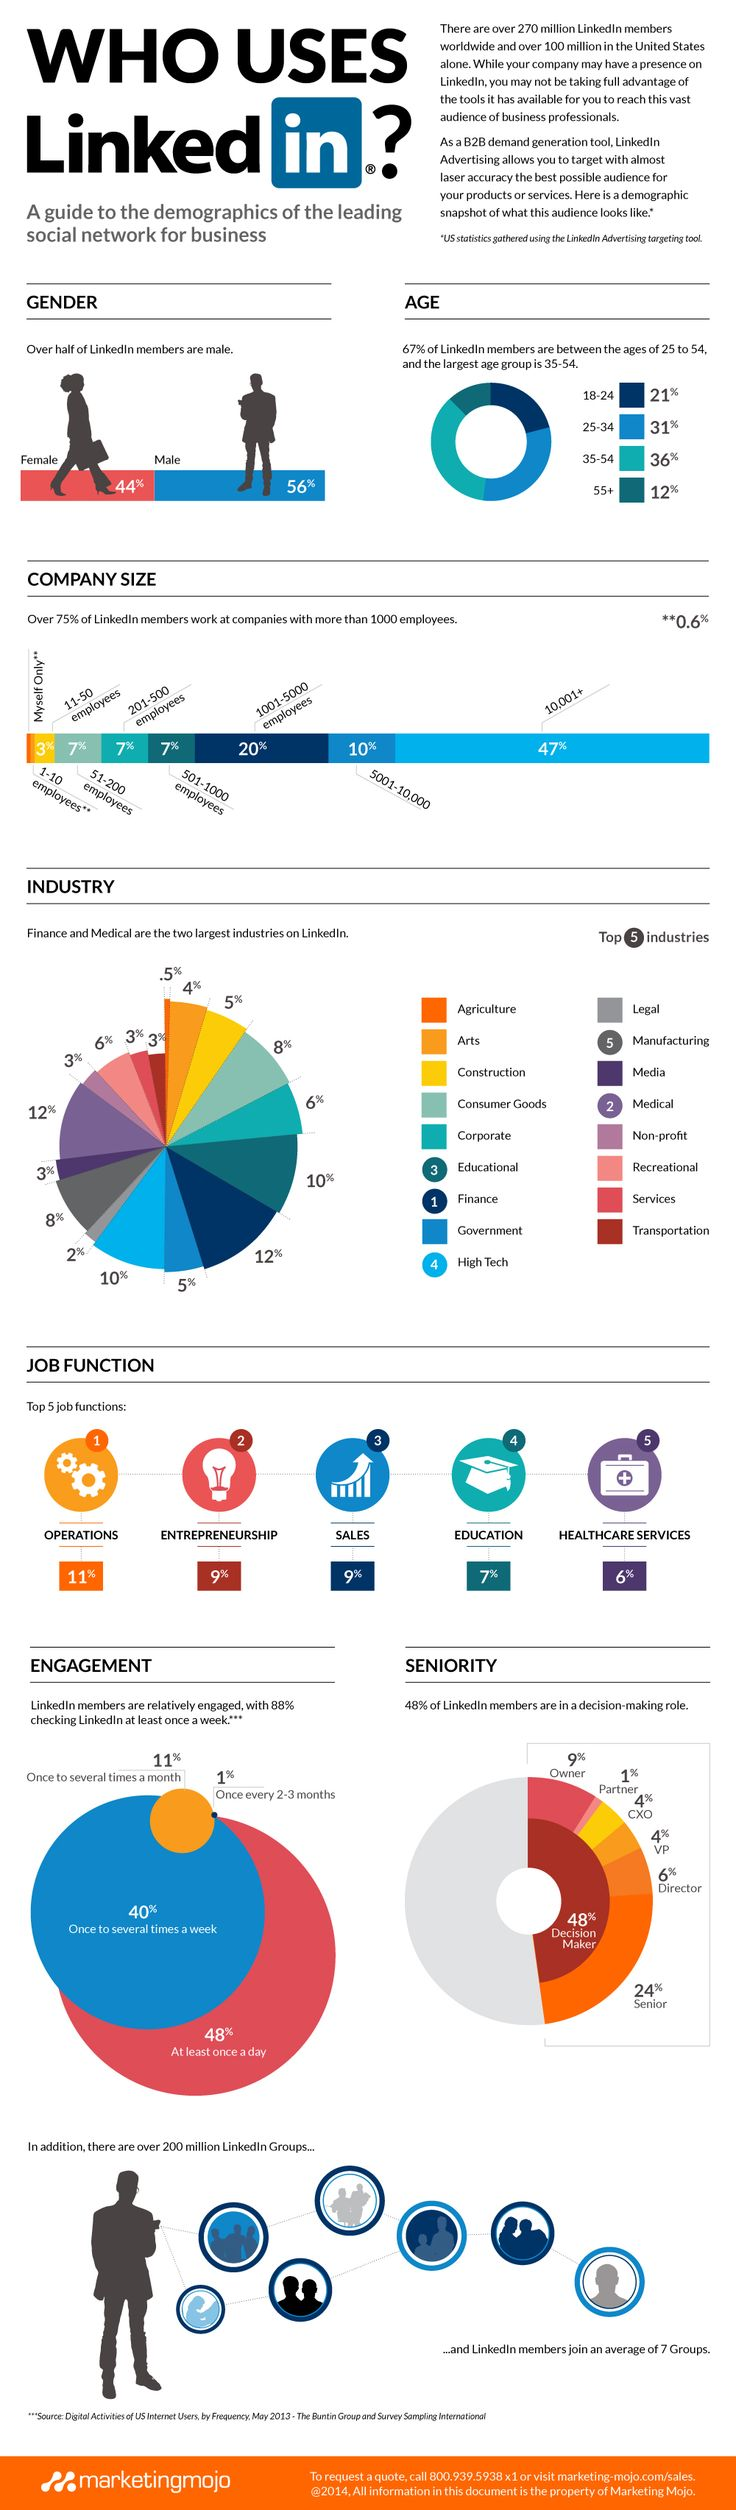 A Guide to Linkedin Demographics [Infographic]